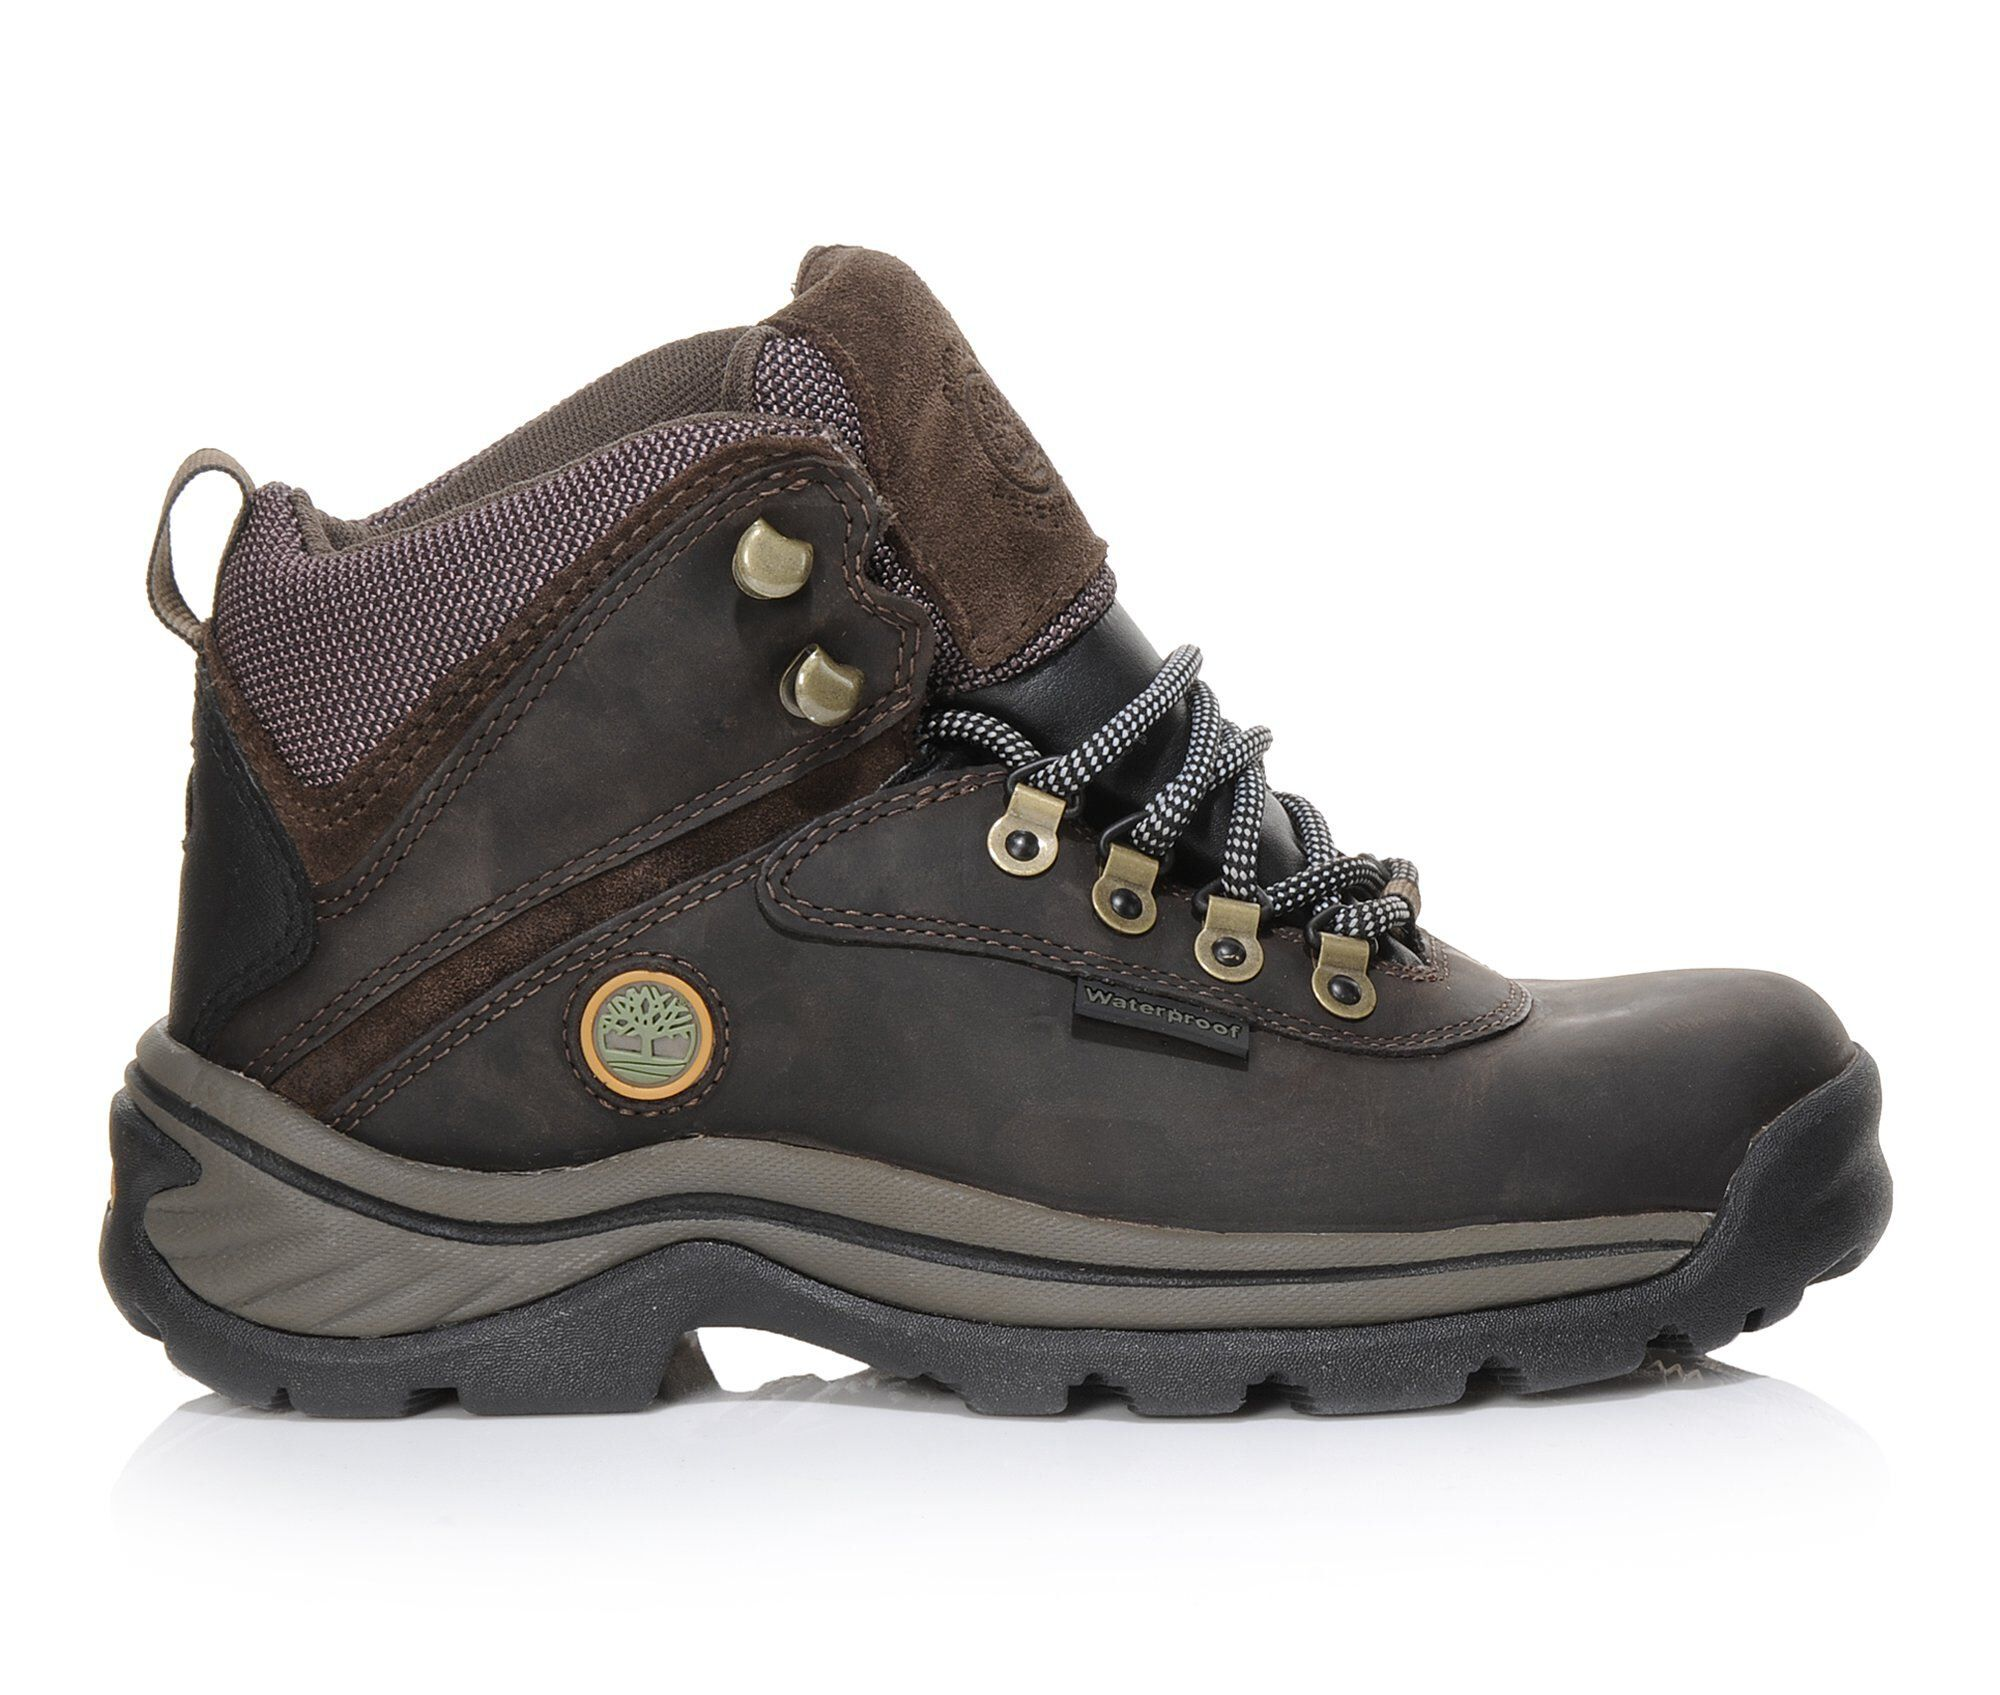 Women's Timberland White Ledge Waterproof Hiking Boots Brown